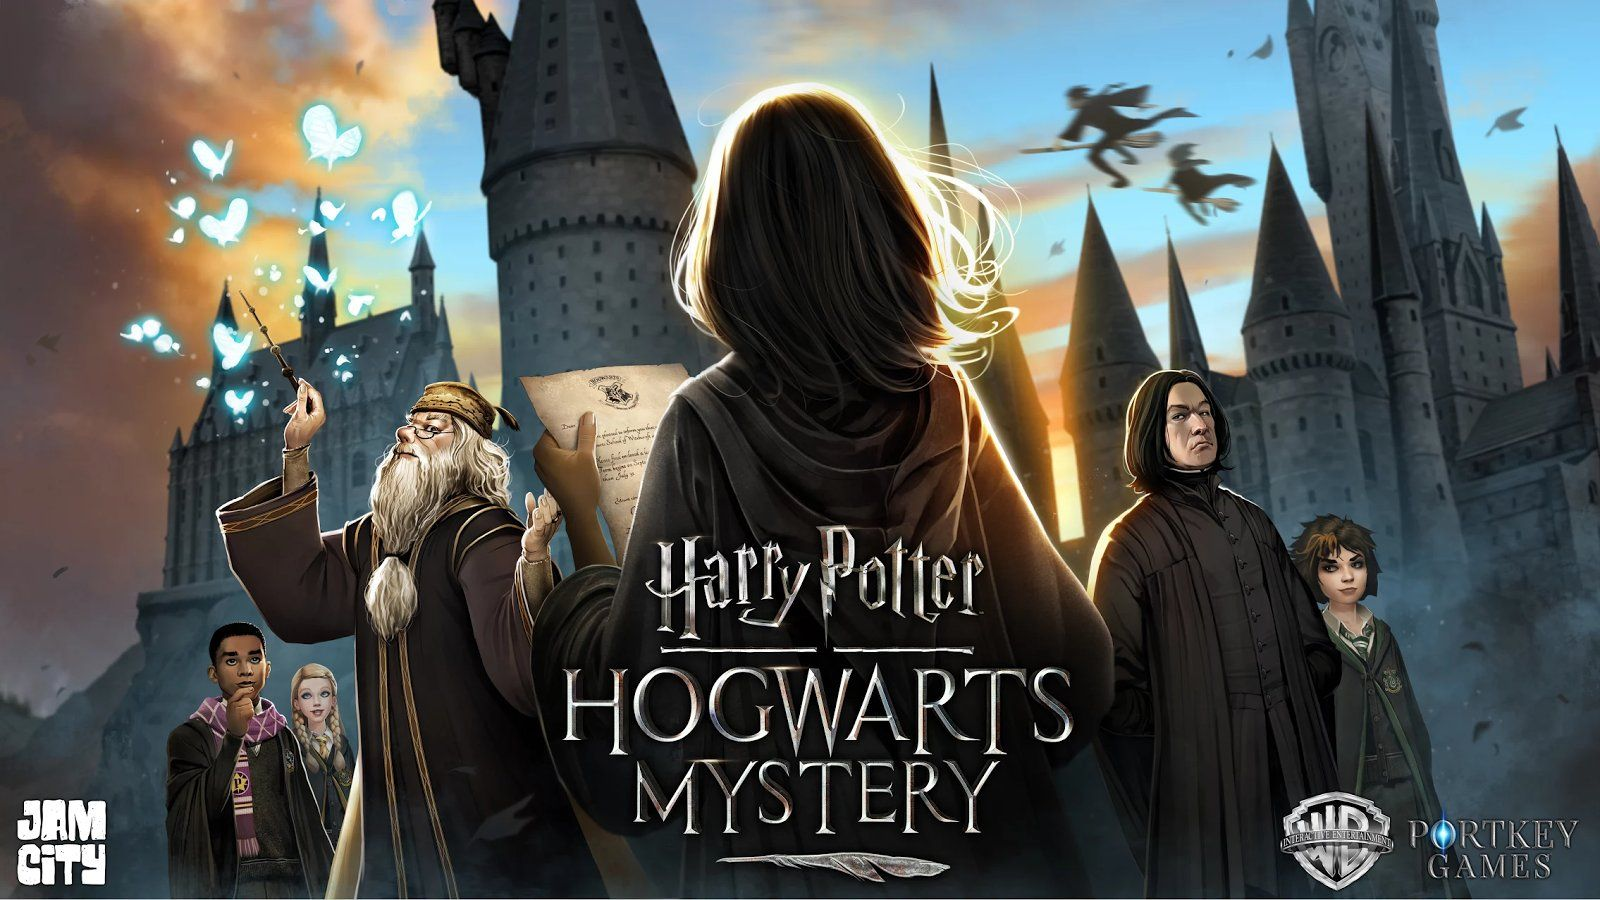 The Harry Potter Hogwarts Mystery Trailer Just Dropped And We Are Officially Obsessed Harry Potter Games Hogwarts Mystery Harry Potter Movies